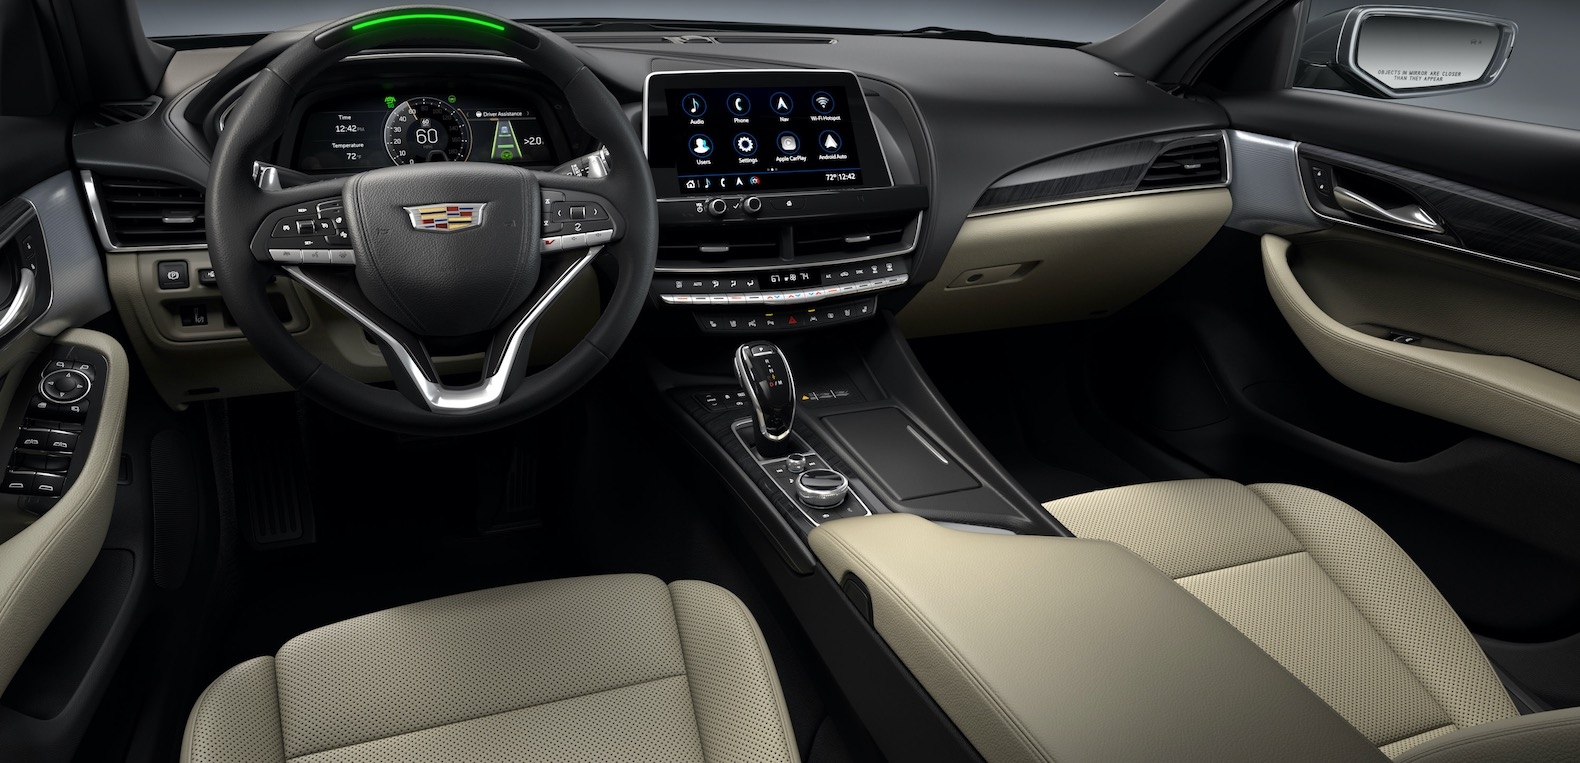 2021 cadillac ct4 and ct5 get enhanced super cruise and